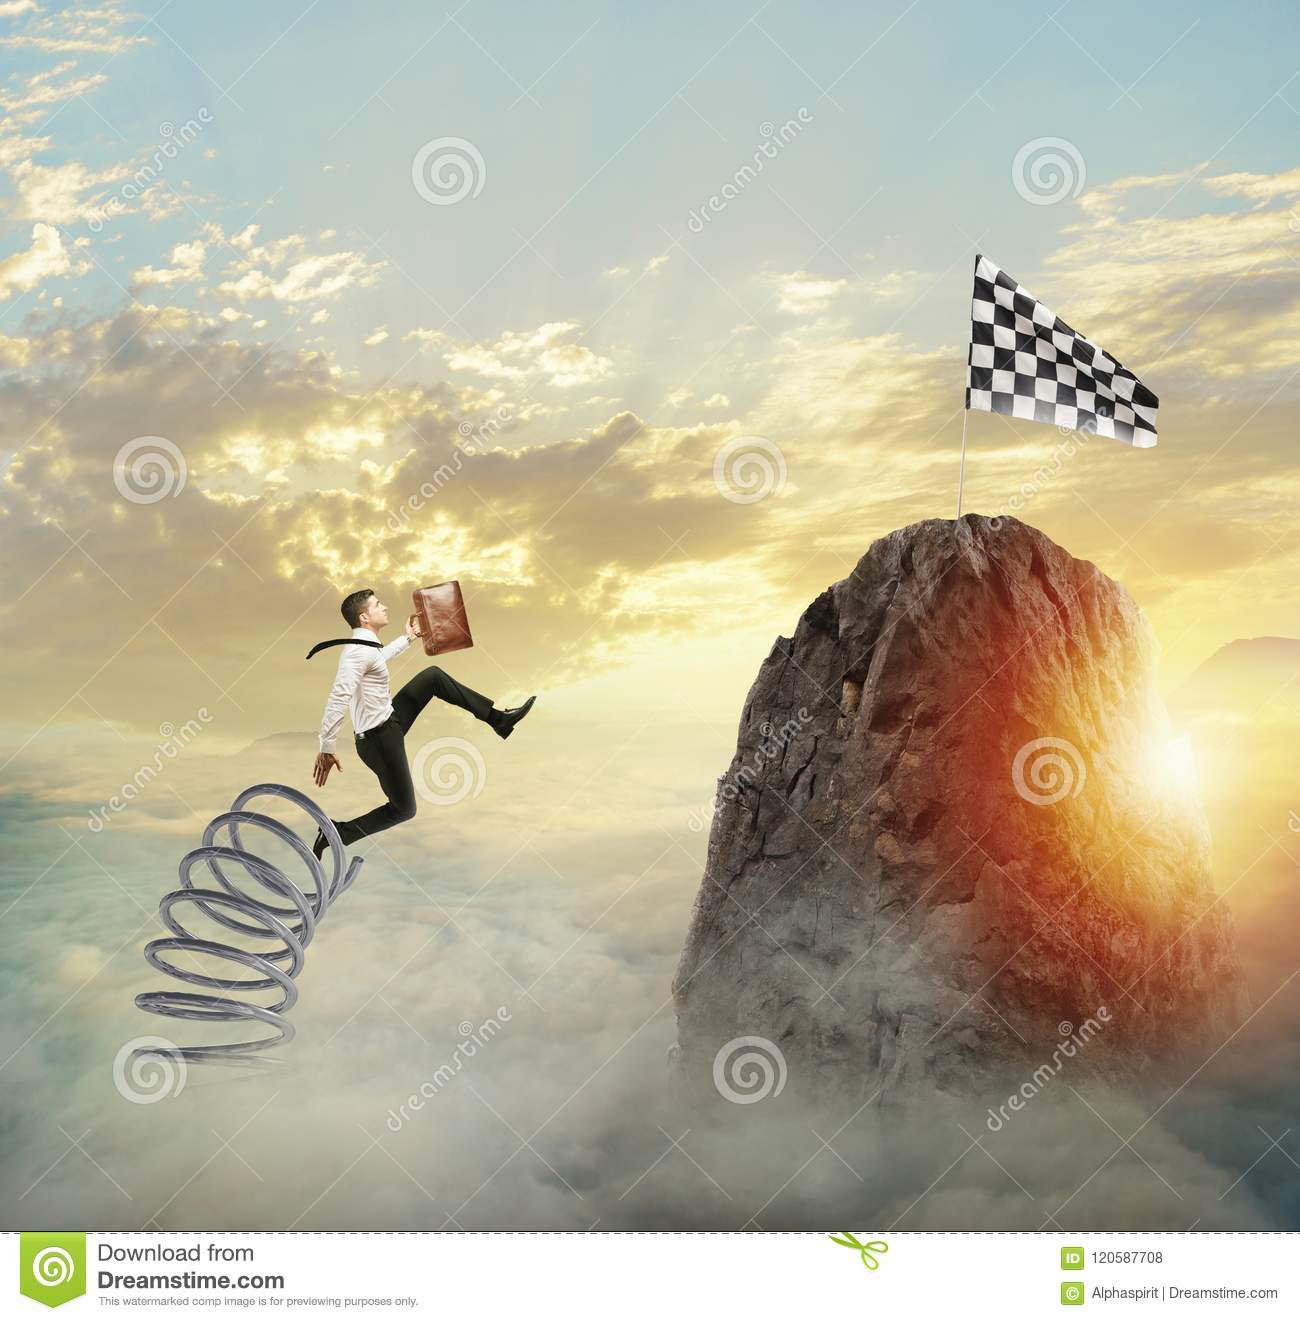 Businessman jumping on a spring to reach the flag. Achievement business goal and Difficult career concept